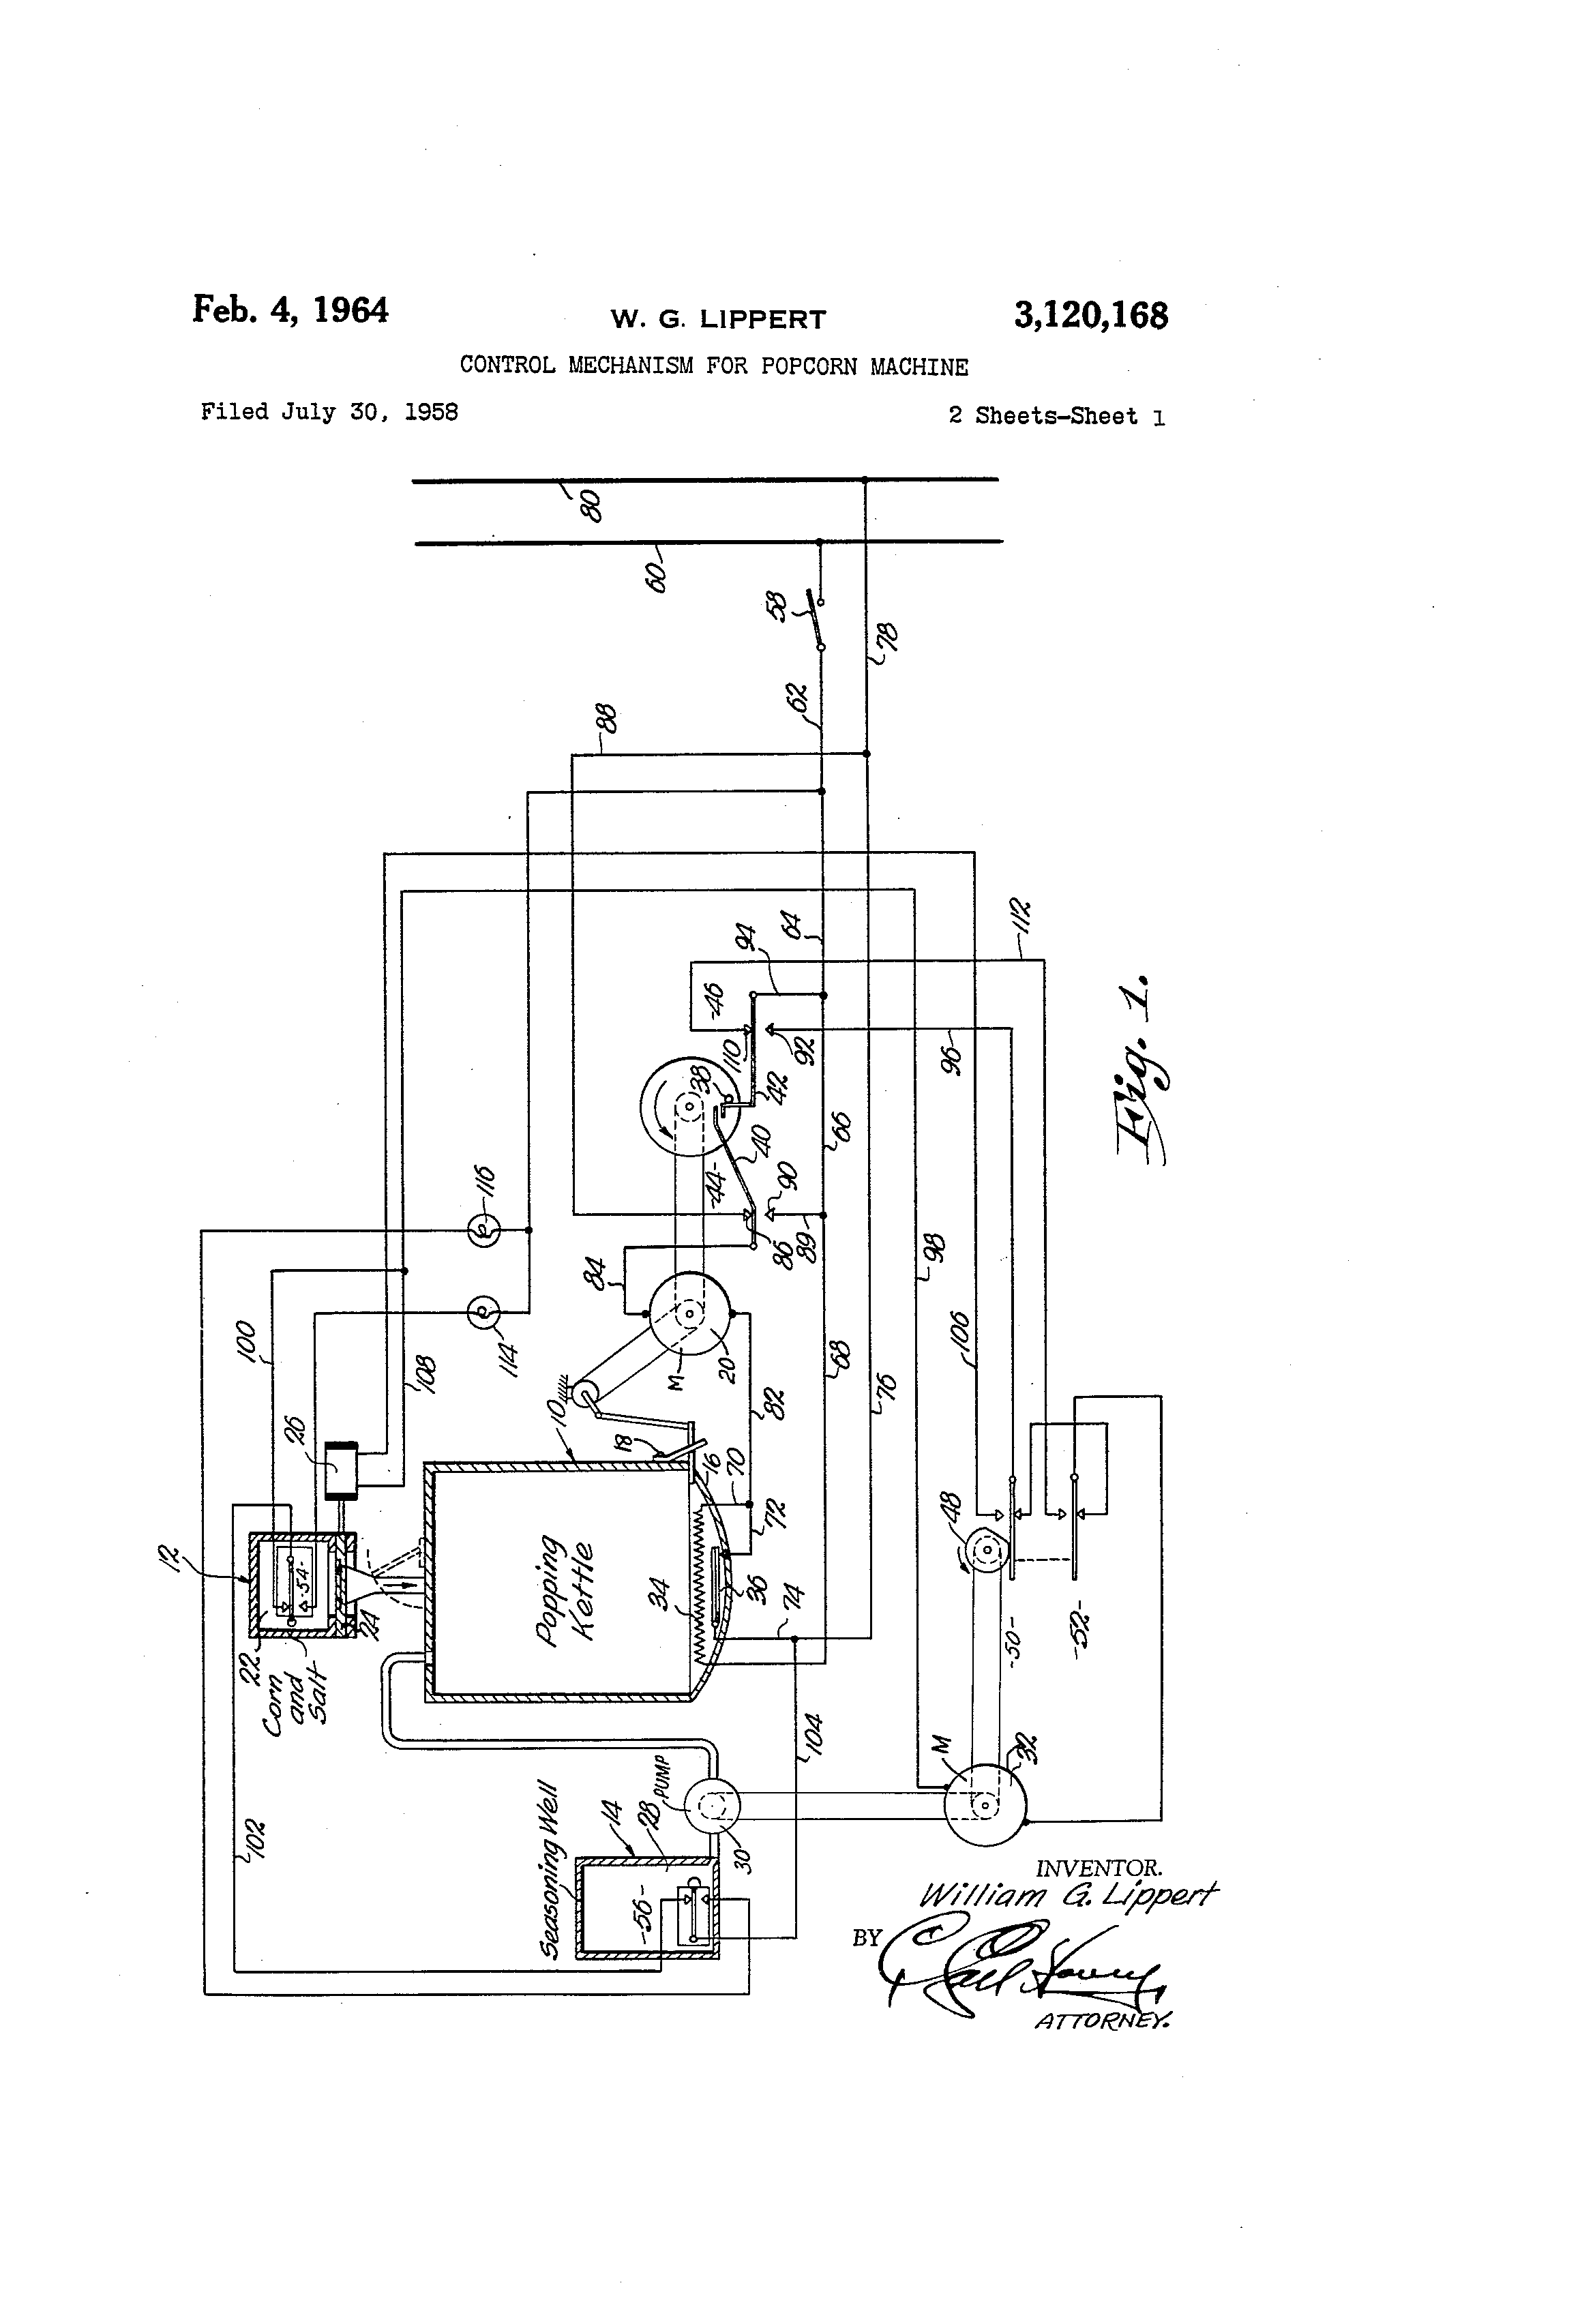 twin tub washing machine wiring diagram patent us3120168 - control mechanism for popcorn machine ... roosevelt popper popcorn machine wiring diagram